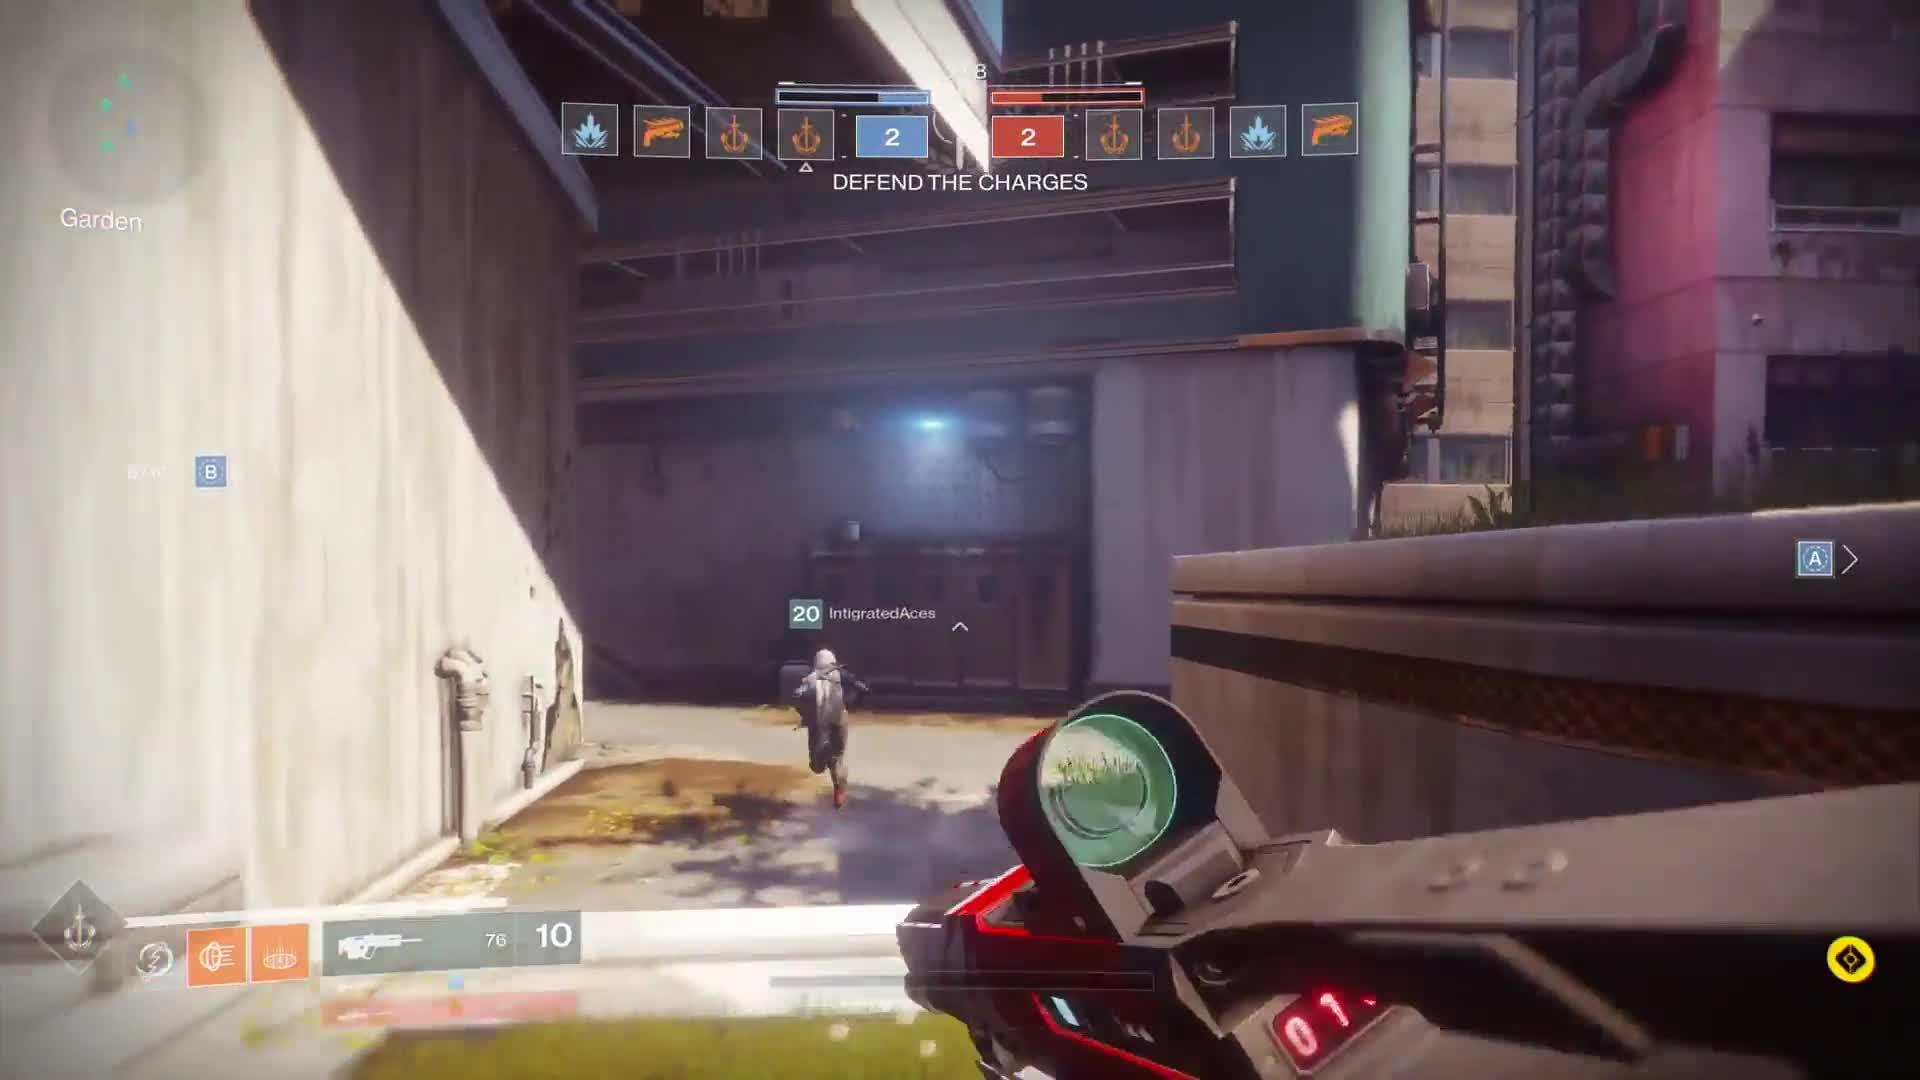 Destiny 2 - Warlock Dawnblade Team Wipe